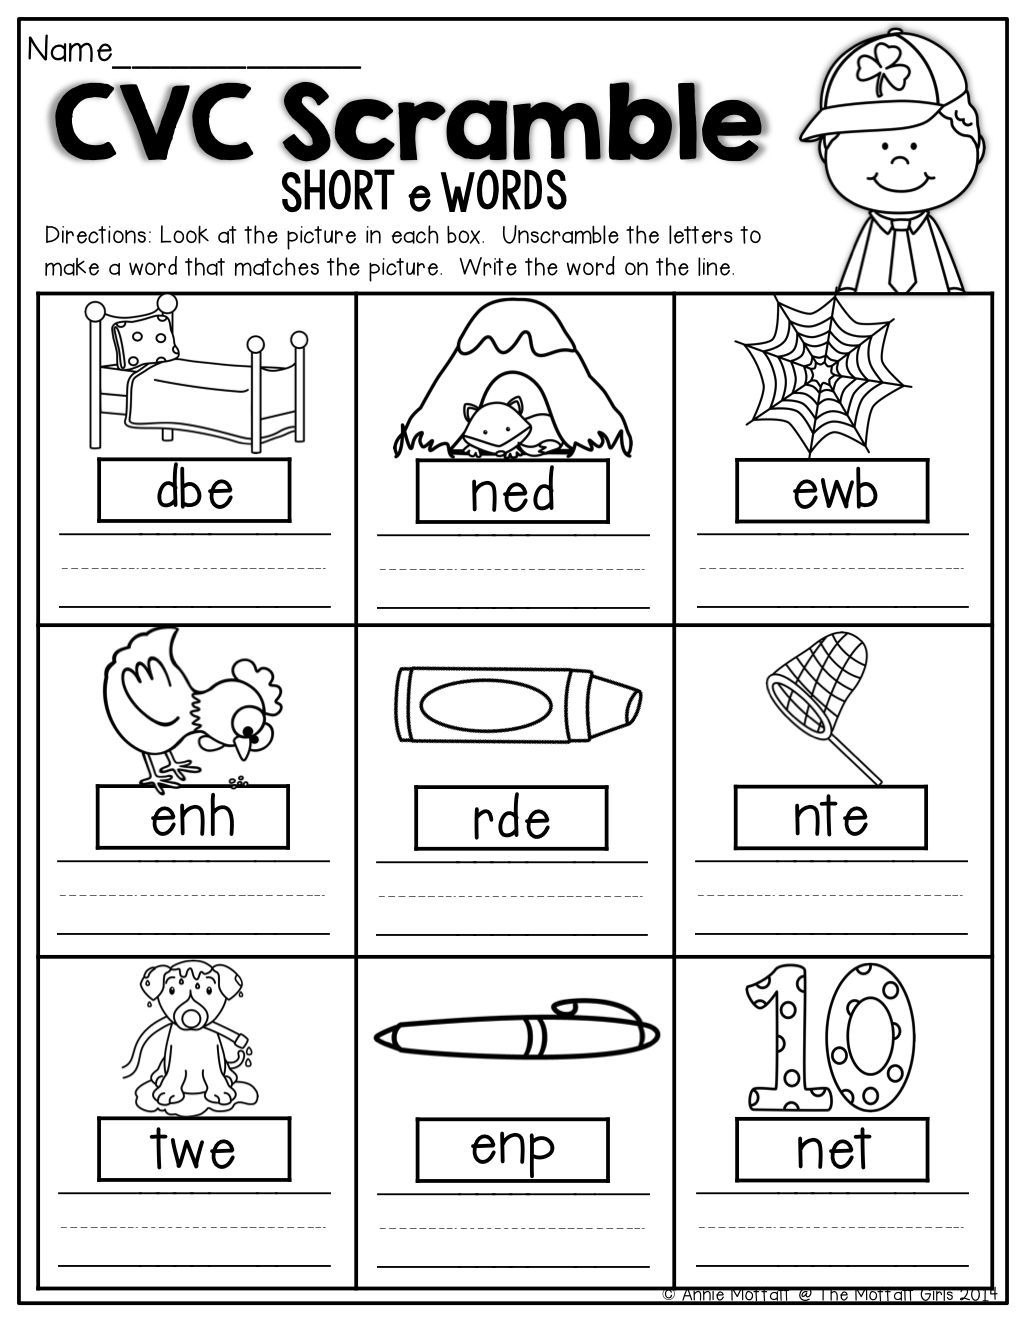 Kindergarten Worksheets For Cvc Words